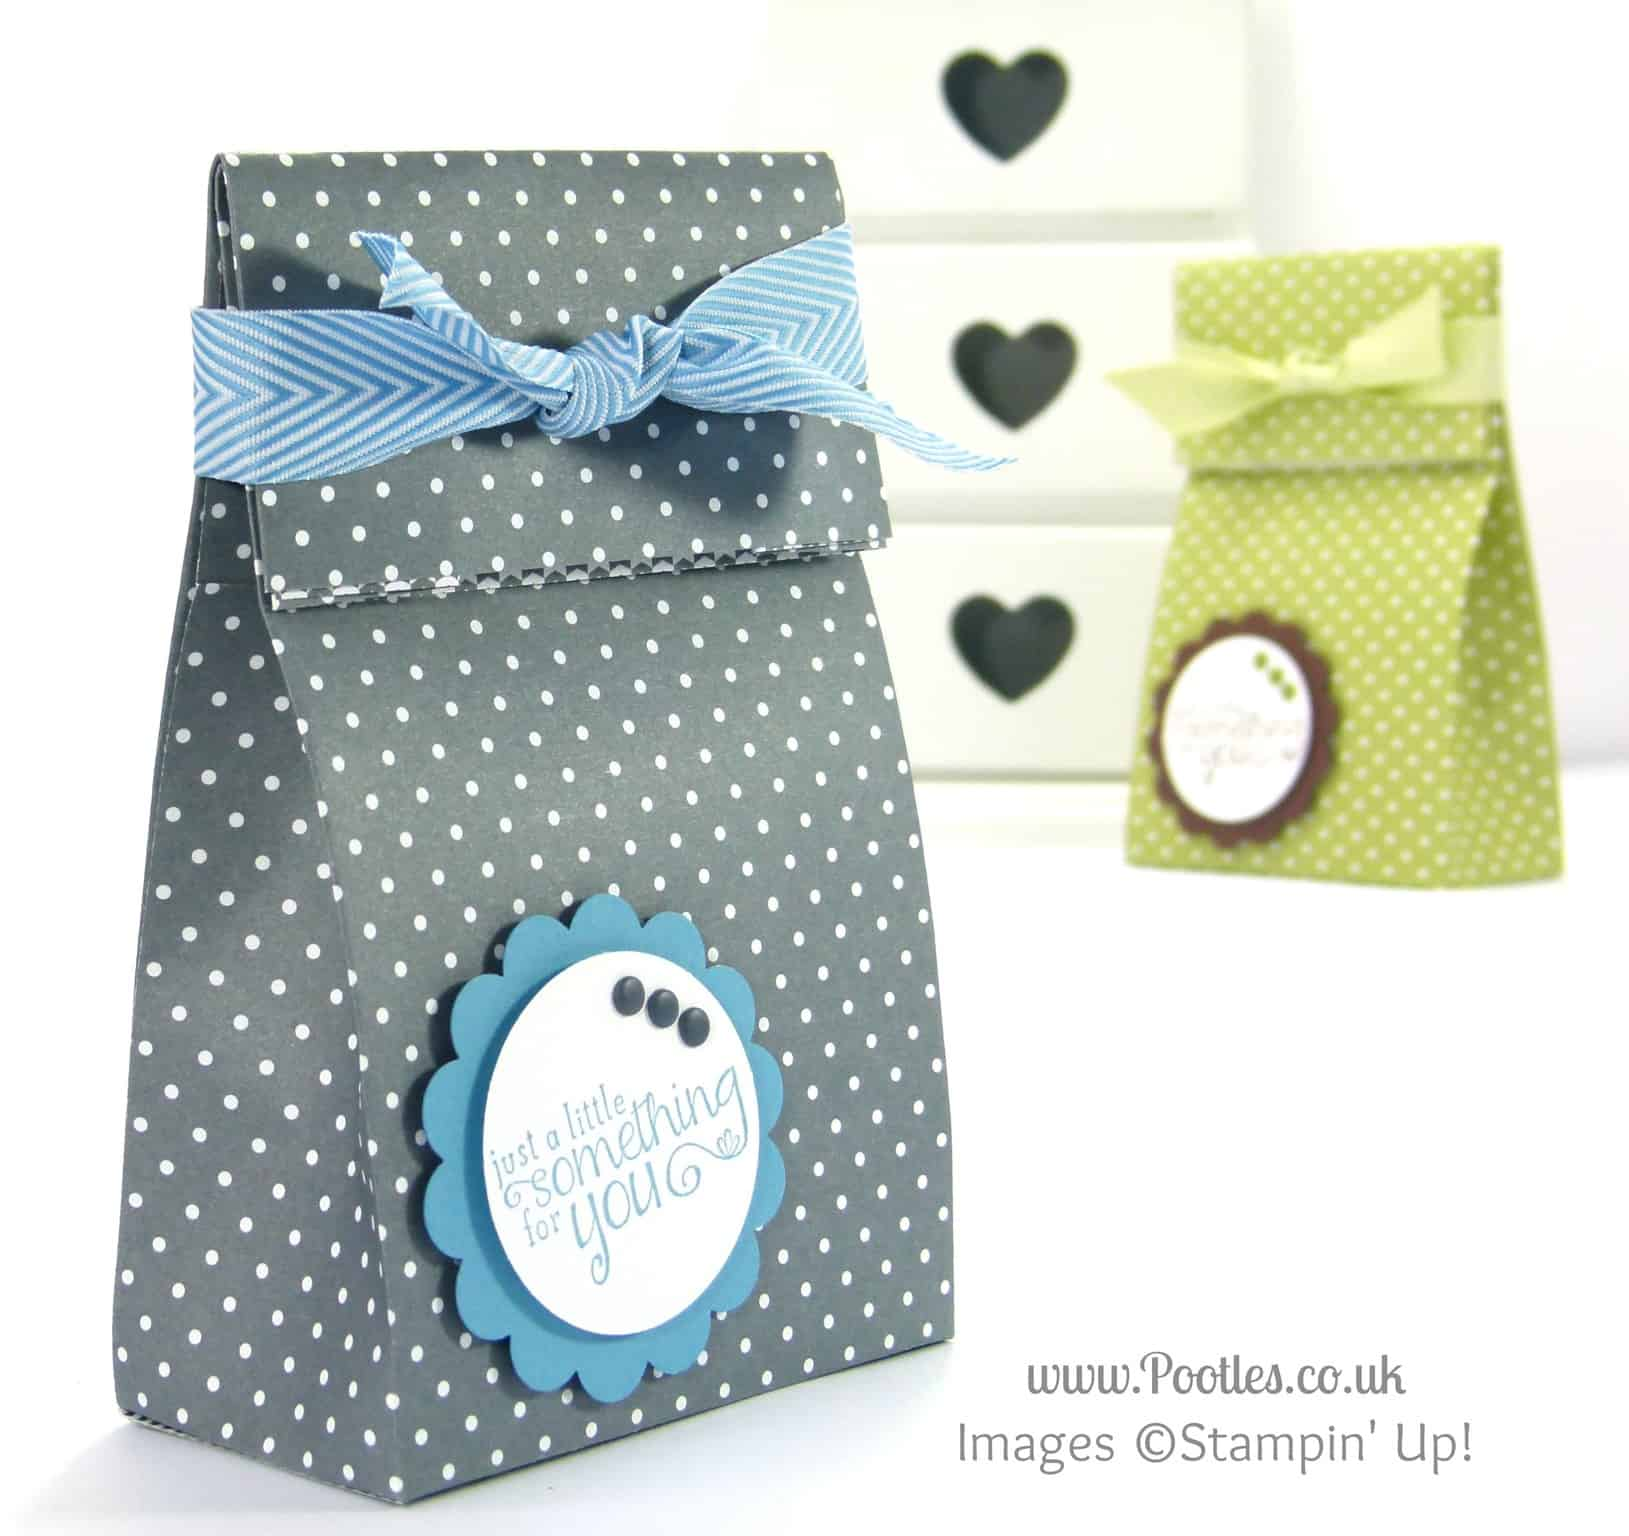 Stampin Up! UK Demonstrator Pootles - Fold Over Paper Bag Tutorial